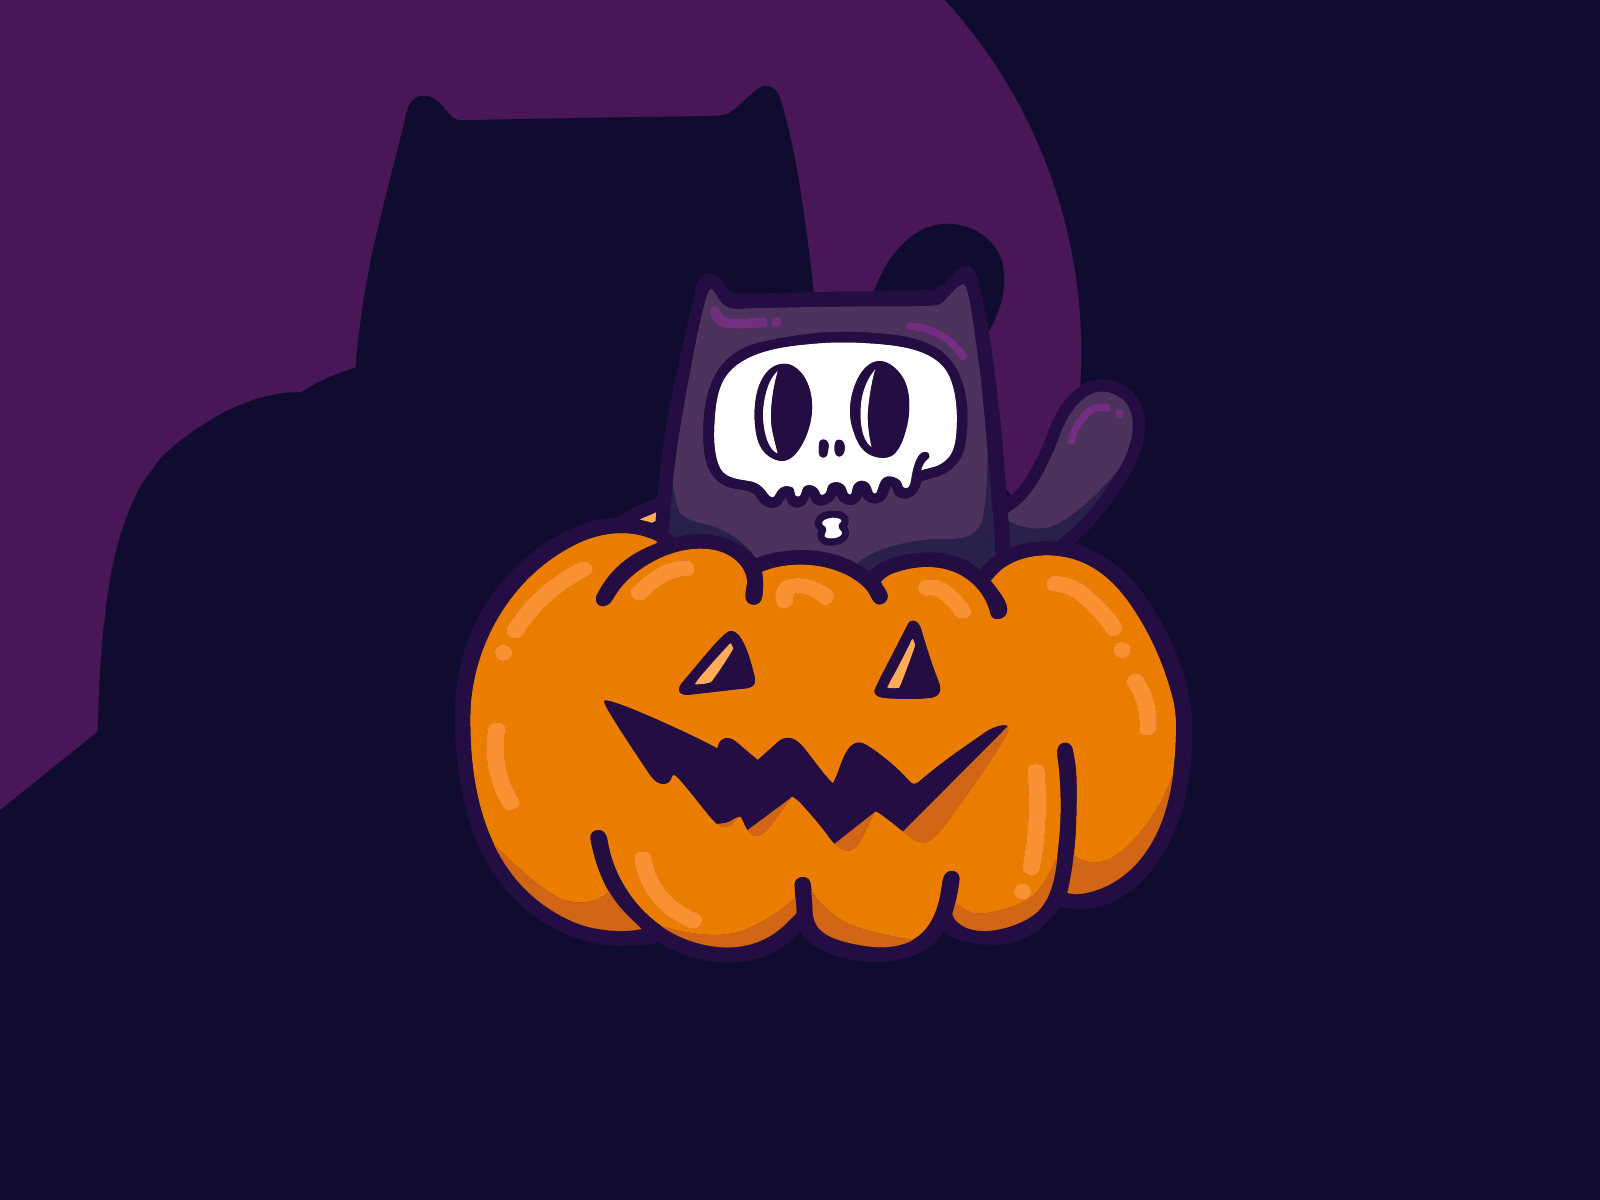 haunts-halloween-cat-in-pumpkin.jpg